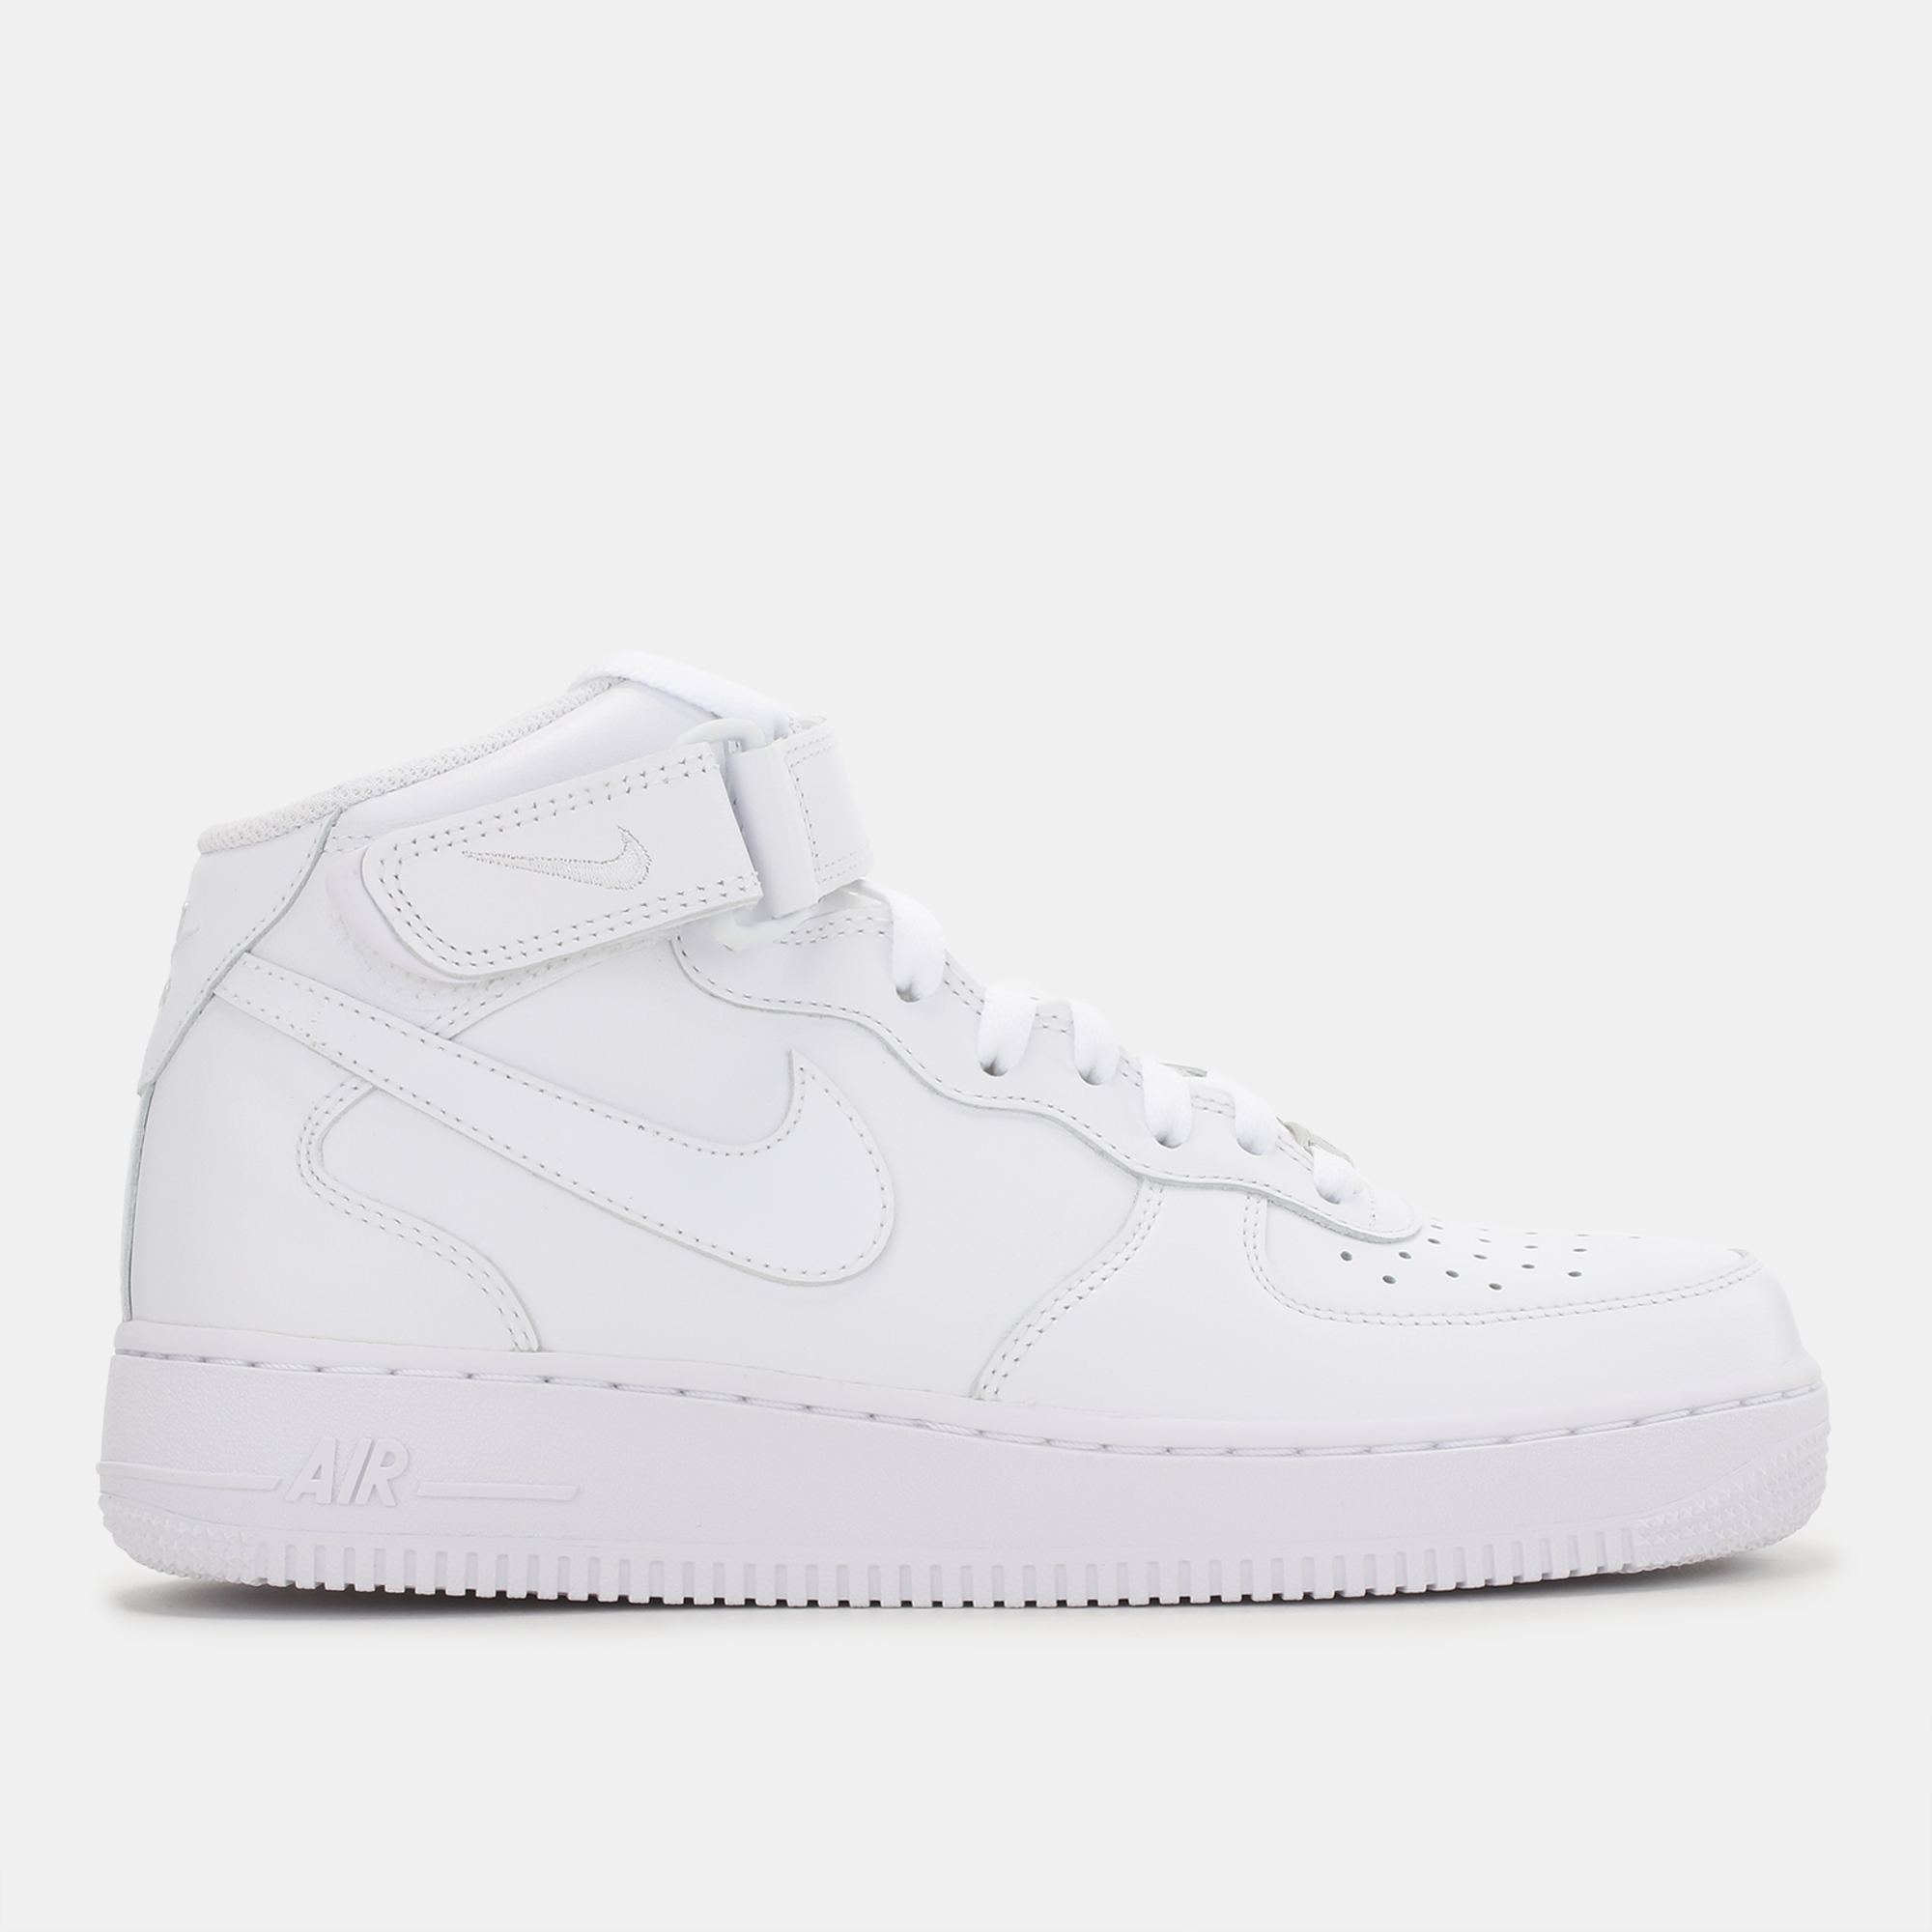 detailed look 0c94d 8e41e Shop White Nike Air Force 1 Mid '07 Women's Shoe for Womens ...